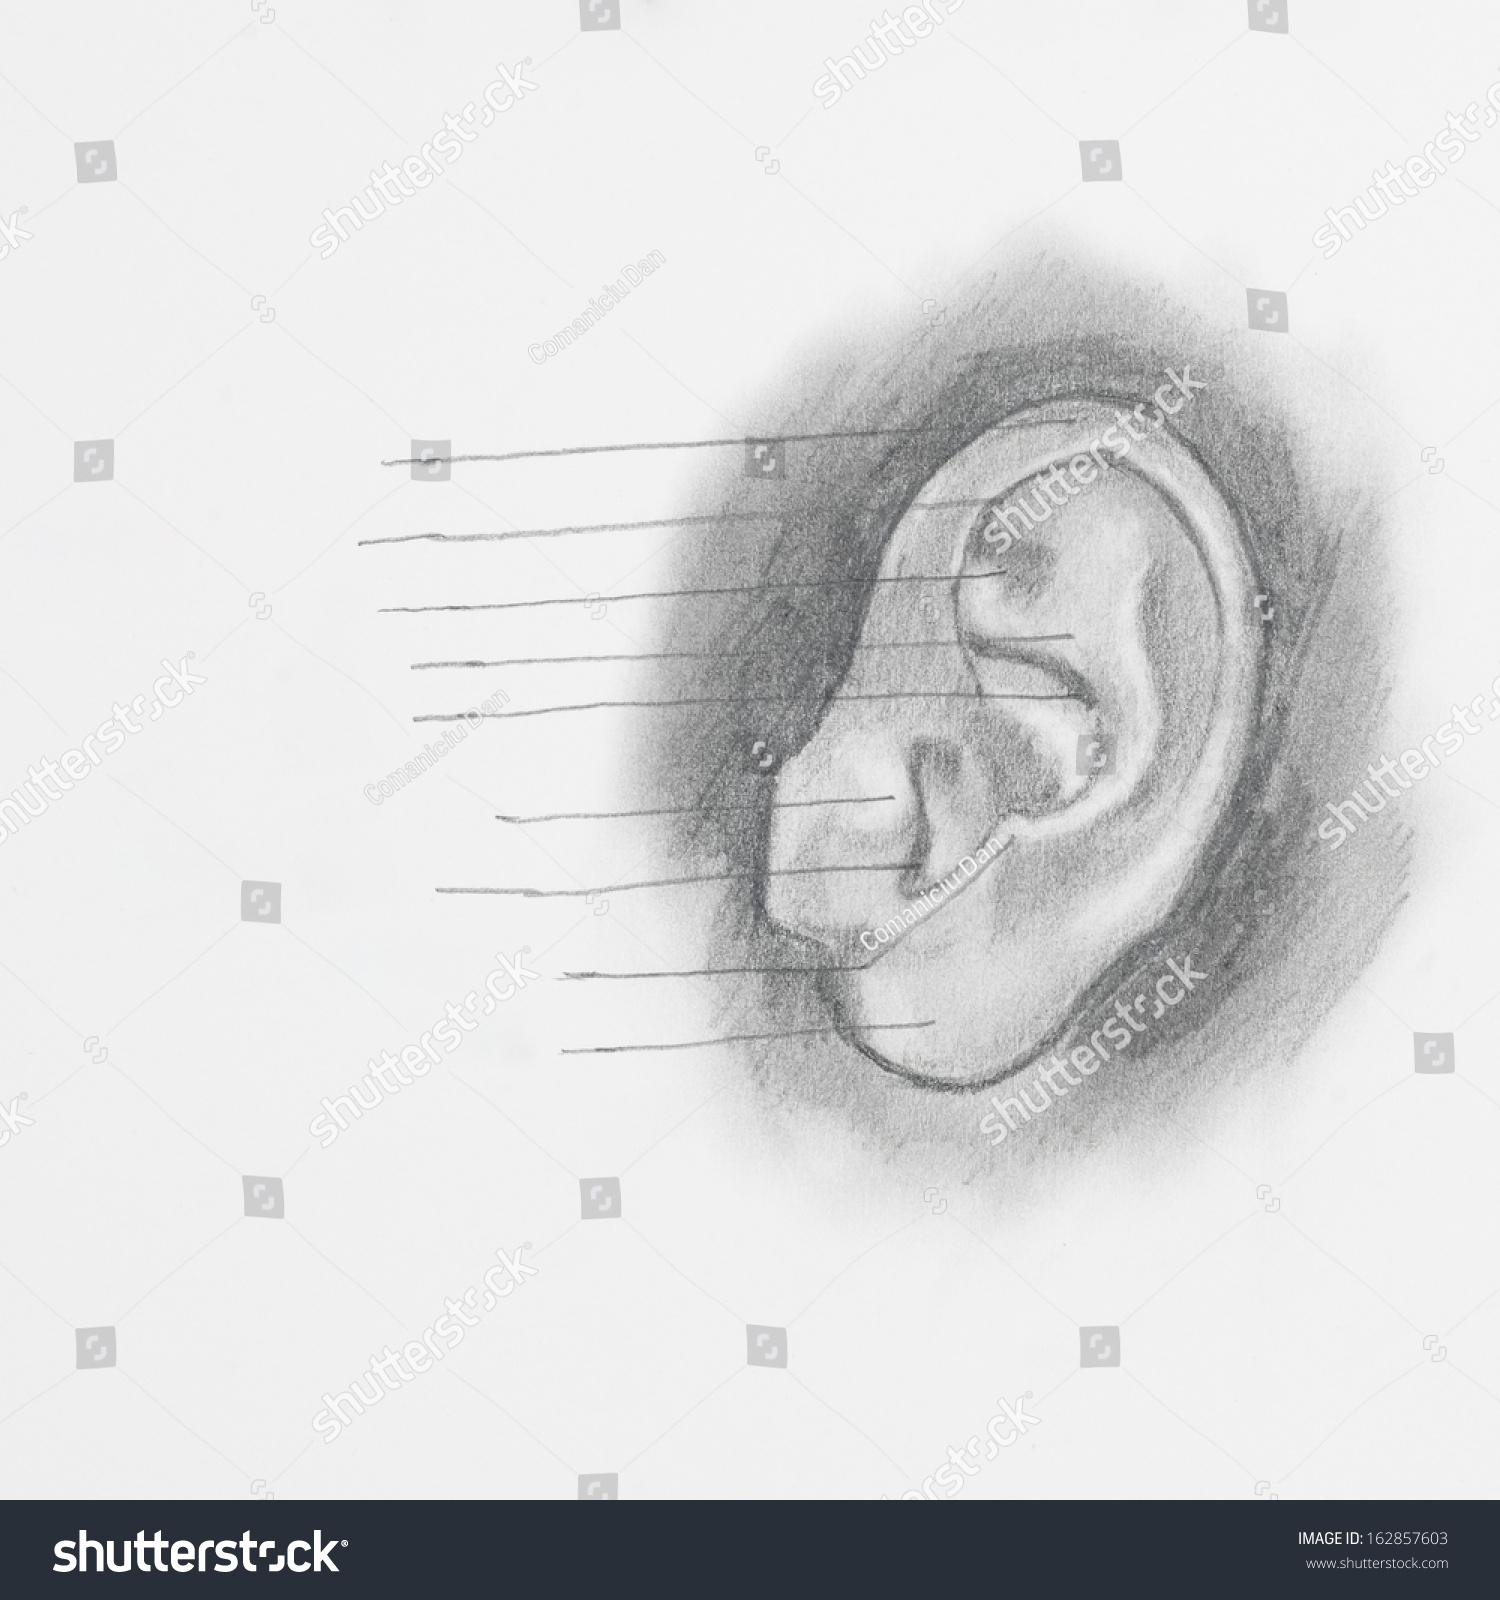 hight resolution of detail of ear pencil drawing on white paper